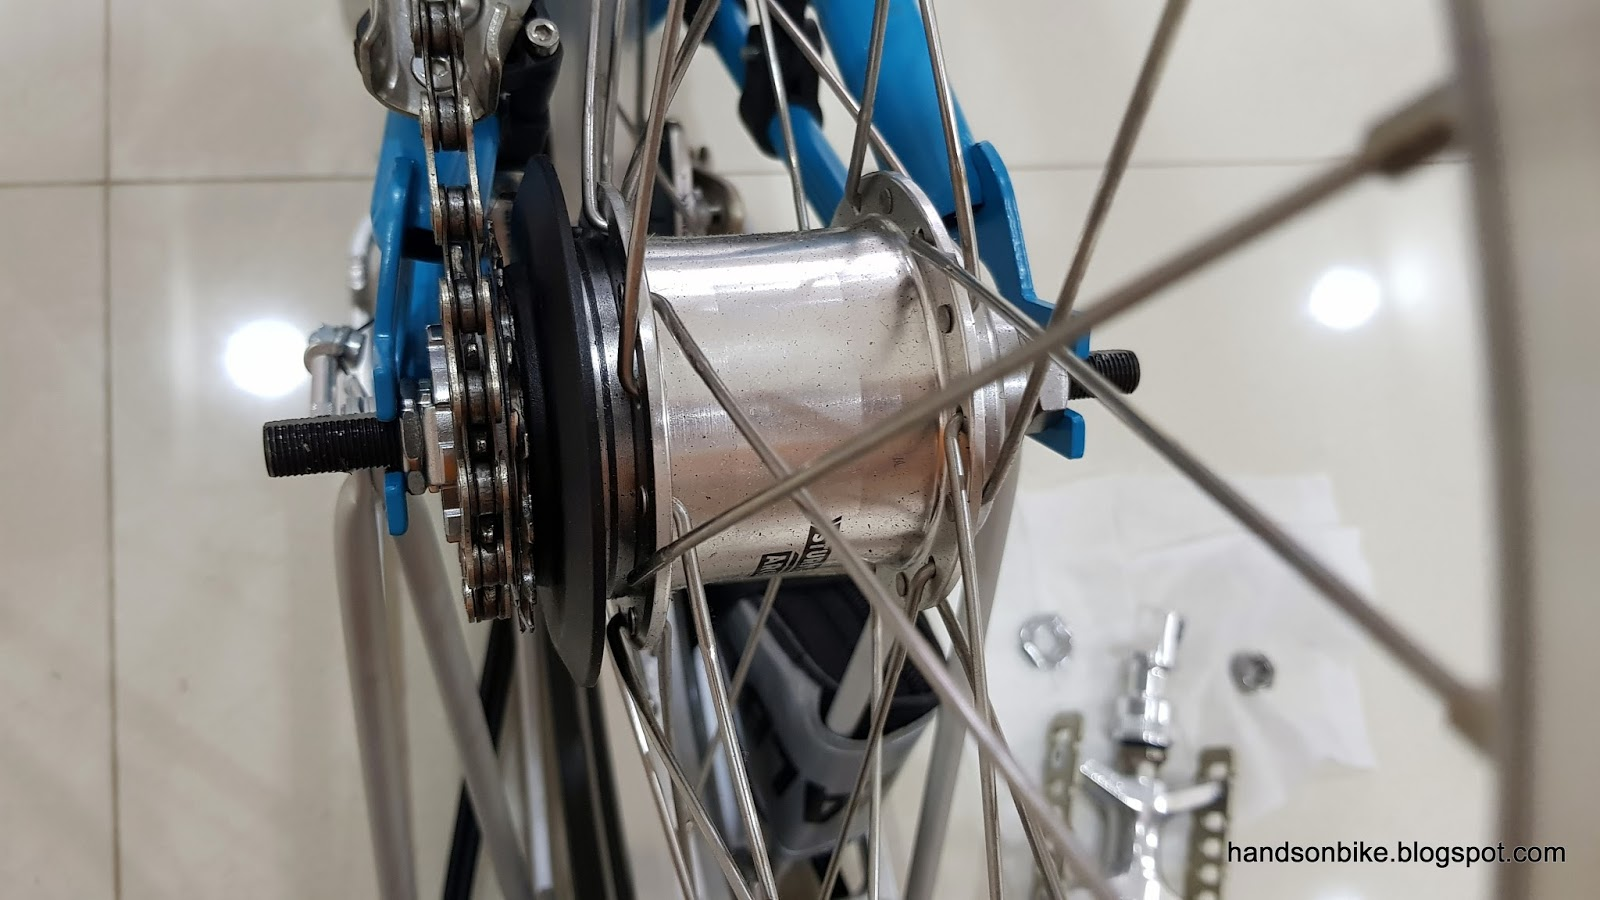 Hands On Bike: Brompton M6R: How to Remove and Install Rear